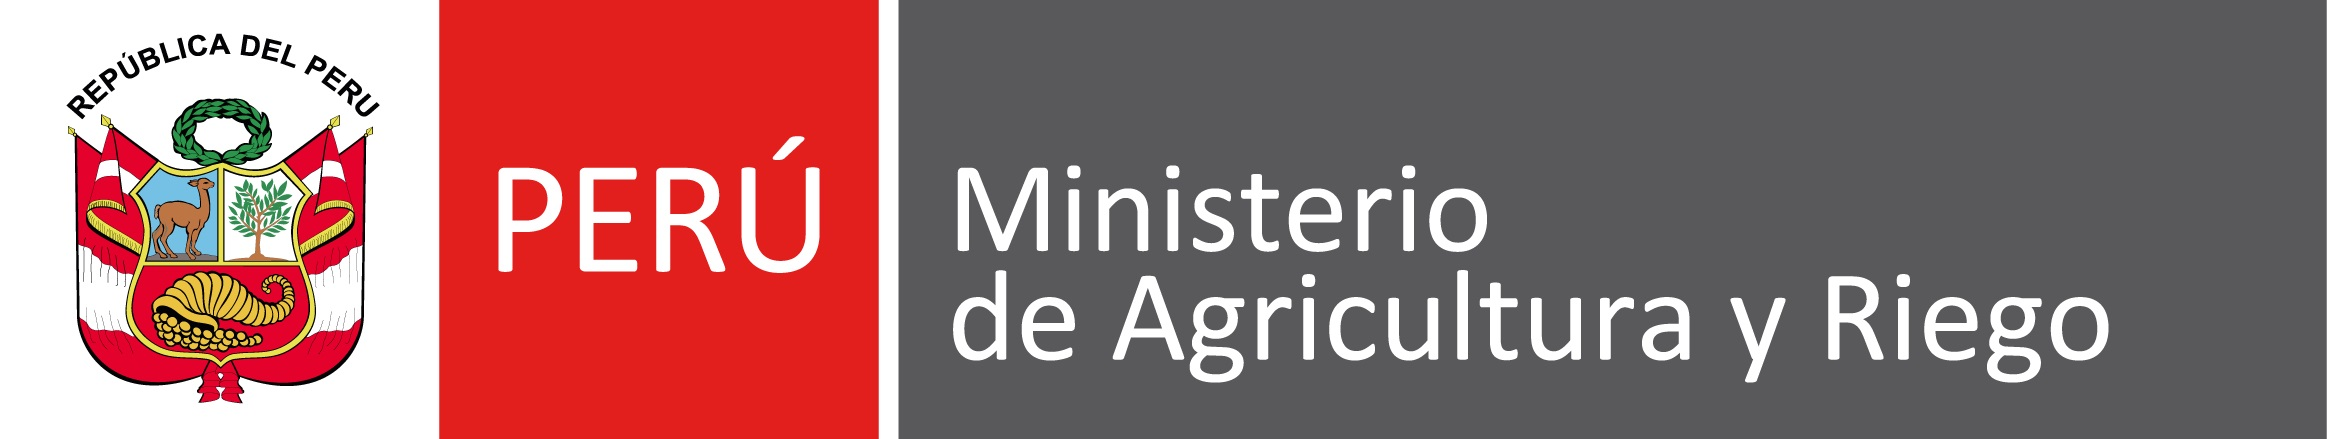 Ministerios Agricultura y Riego